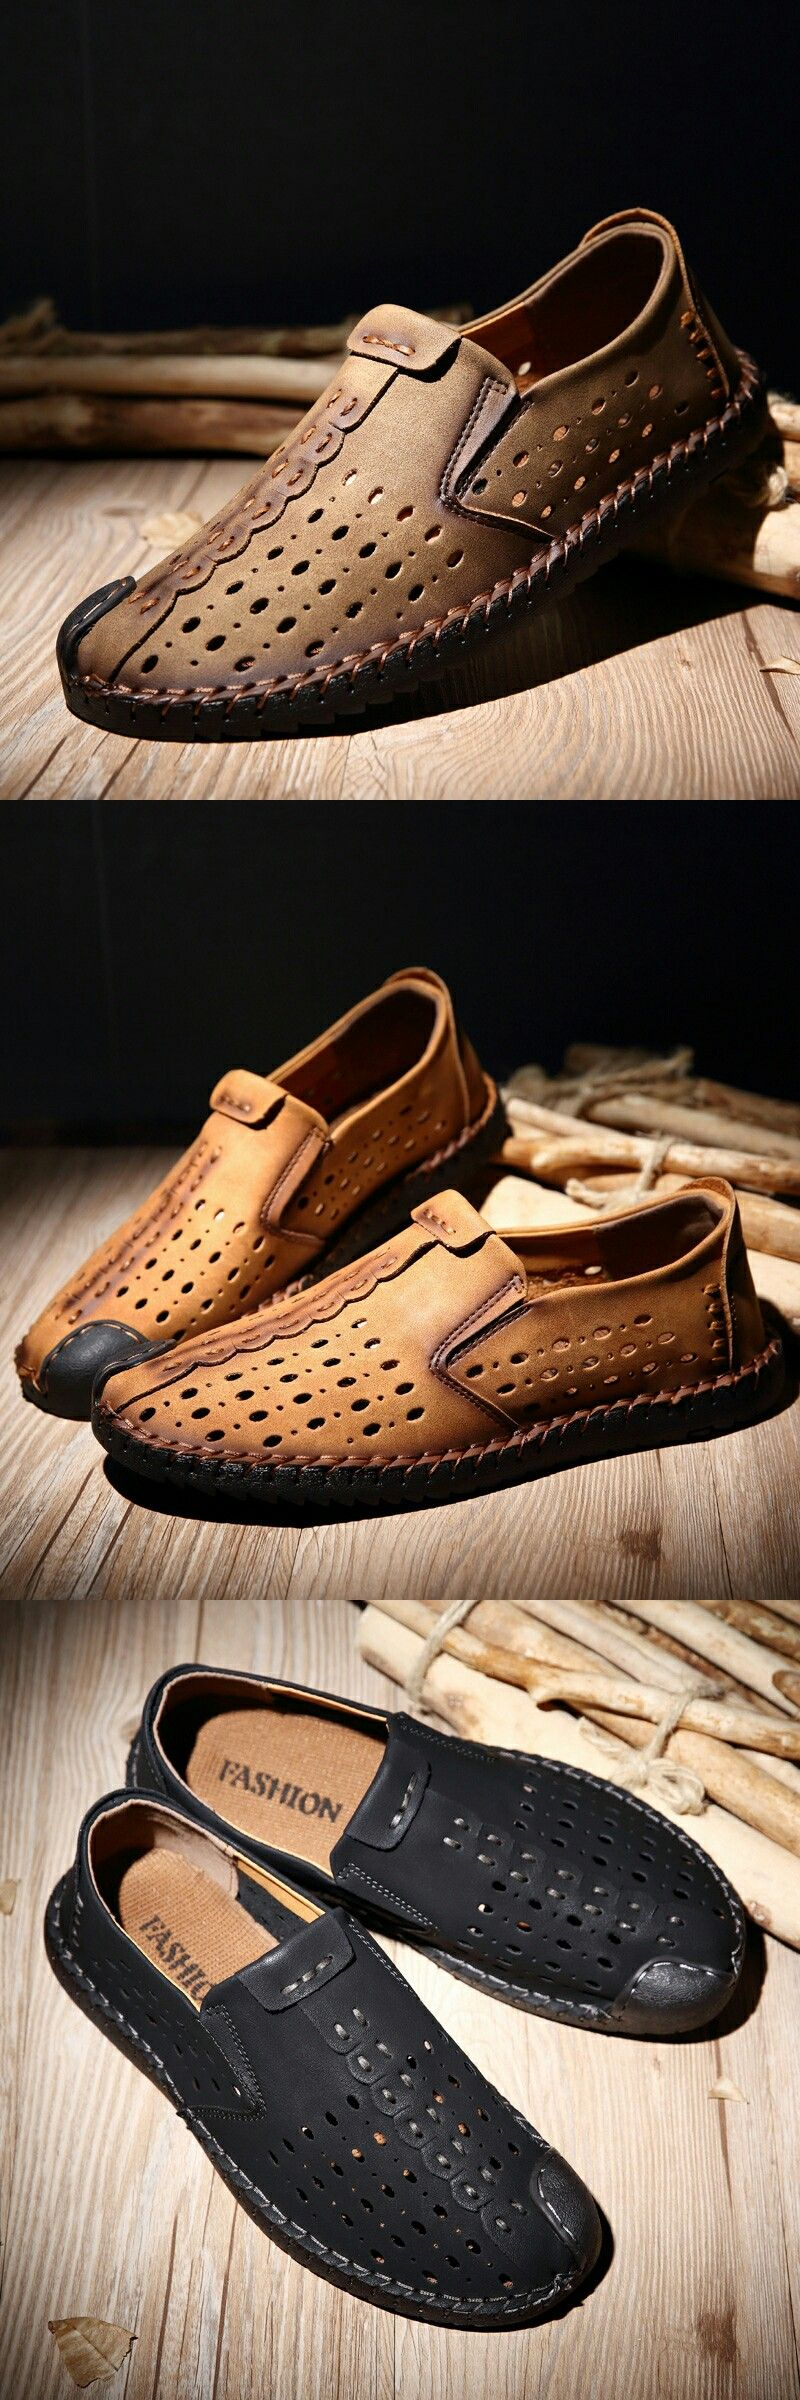 2117980855b0 Amazon Men s Leather Summer Breathable Shoes Walking Slip On Loafers Casual  Hiking Shoes